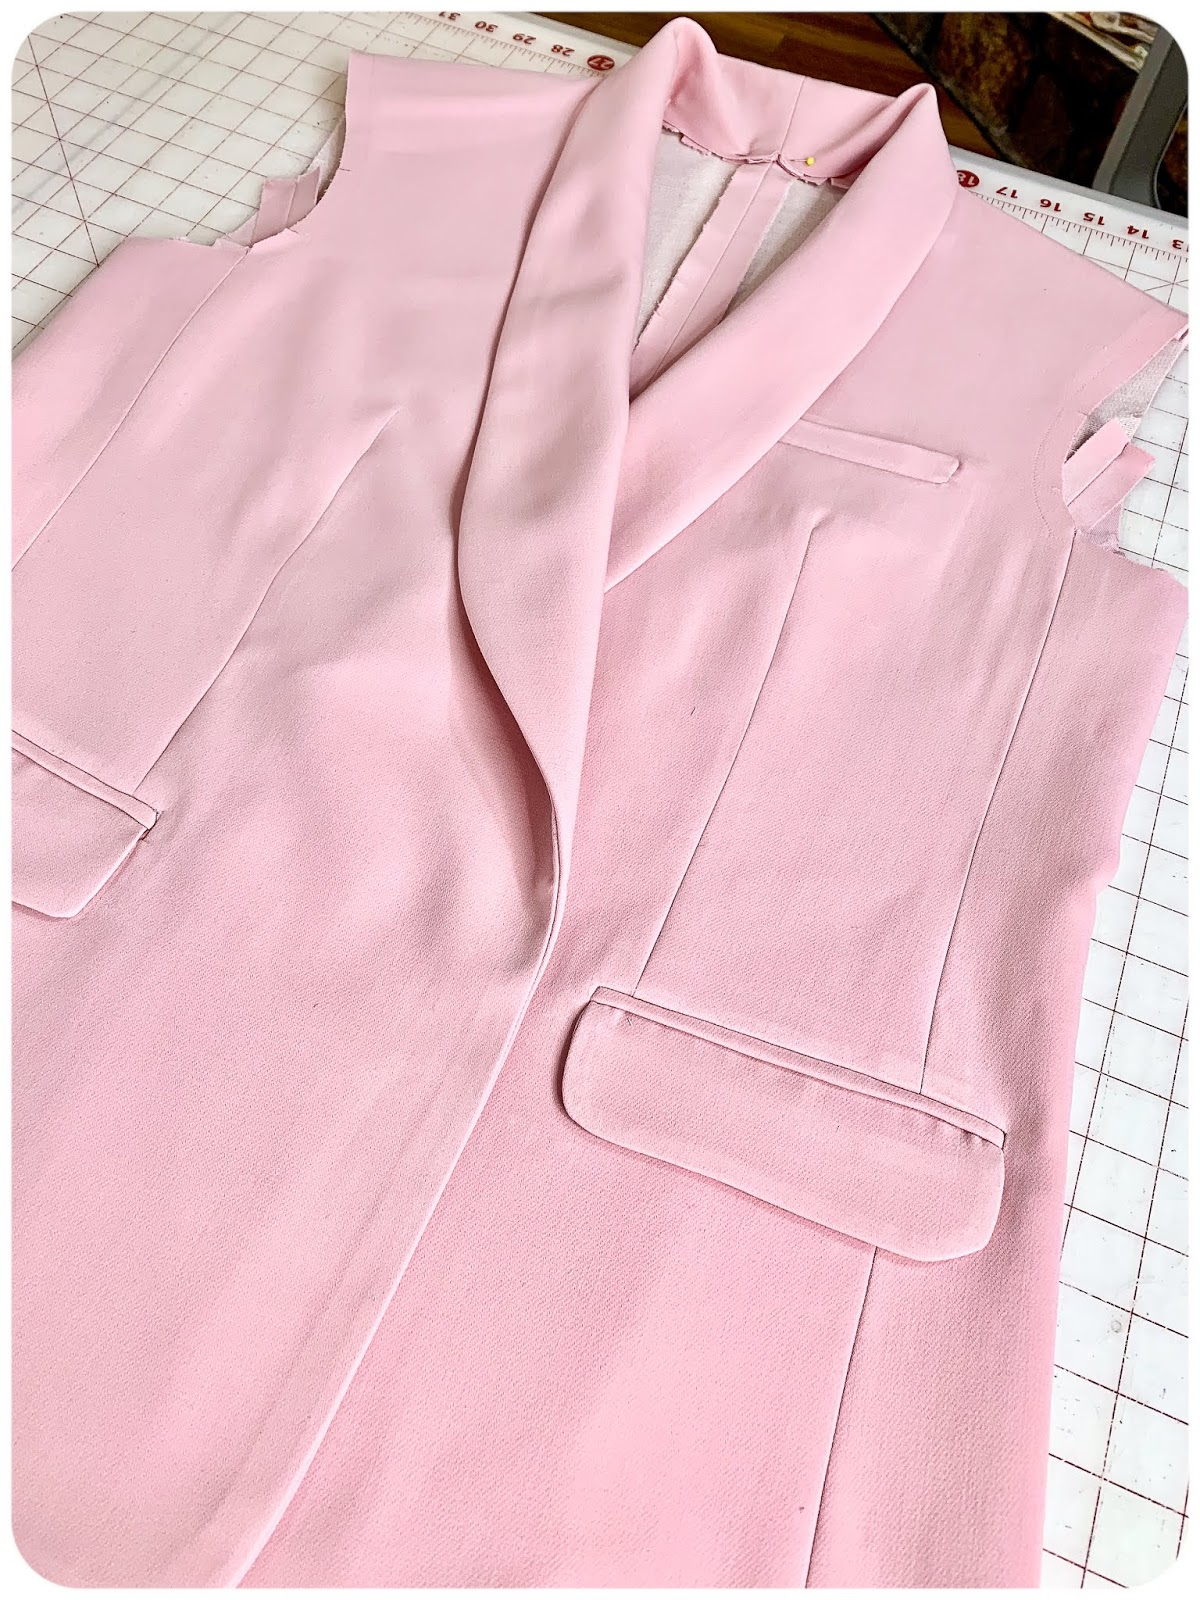 Pink Blazer: McCall's 2370 - Erica Bunker DIY Style!